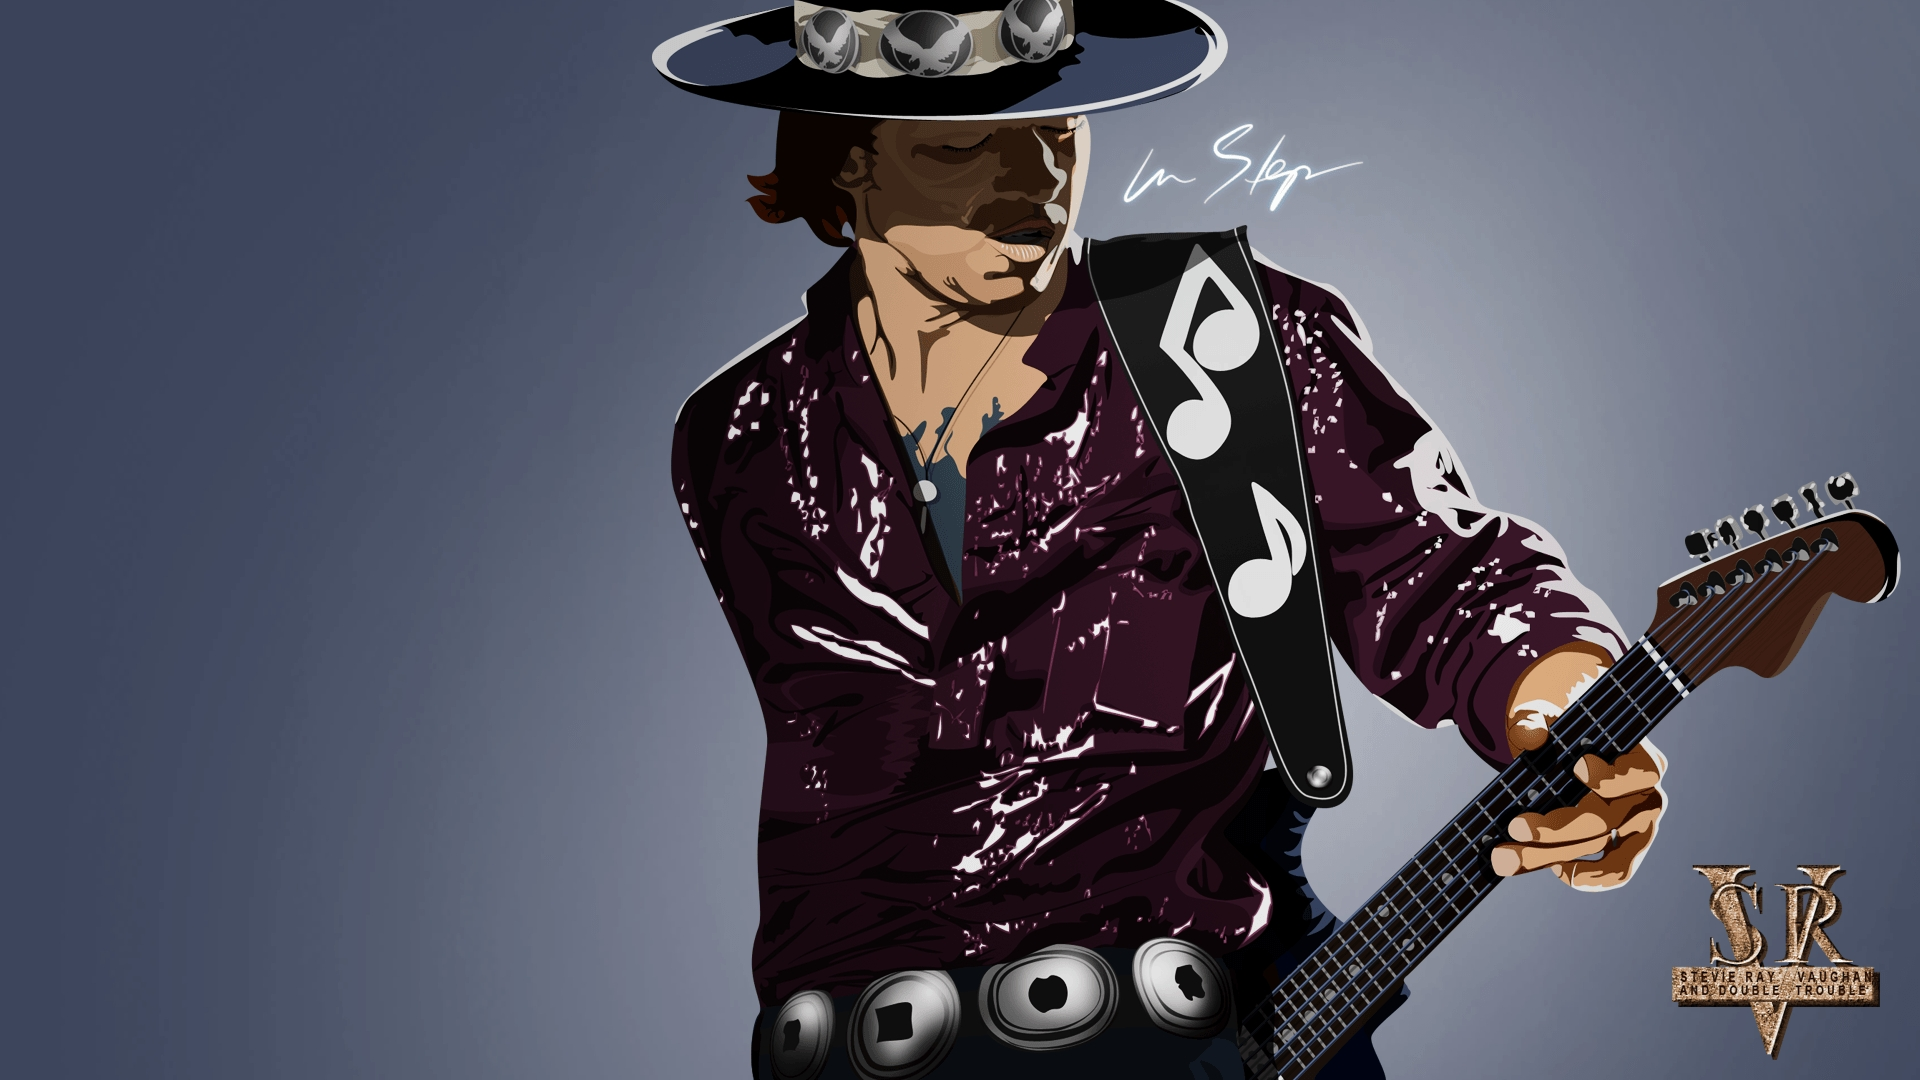 stevie ray vaughan wallpapers - wallpaper cave